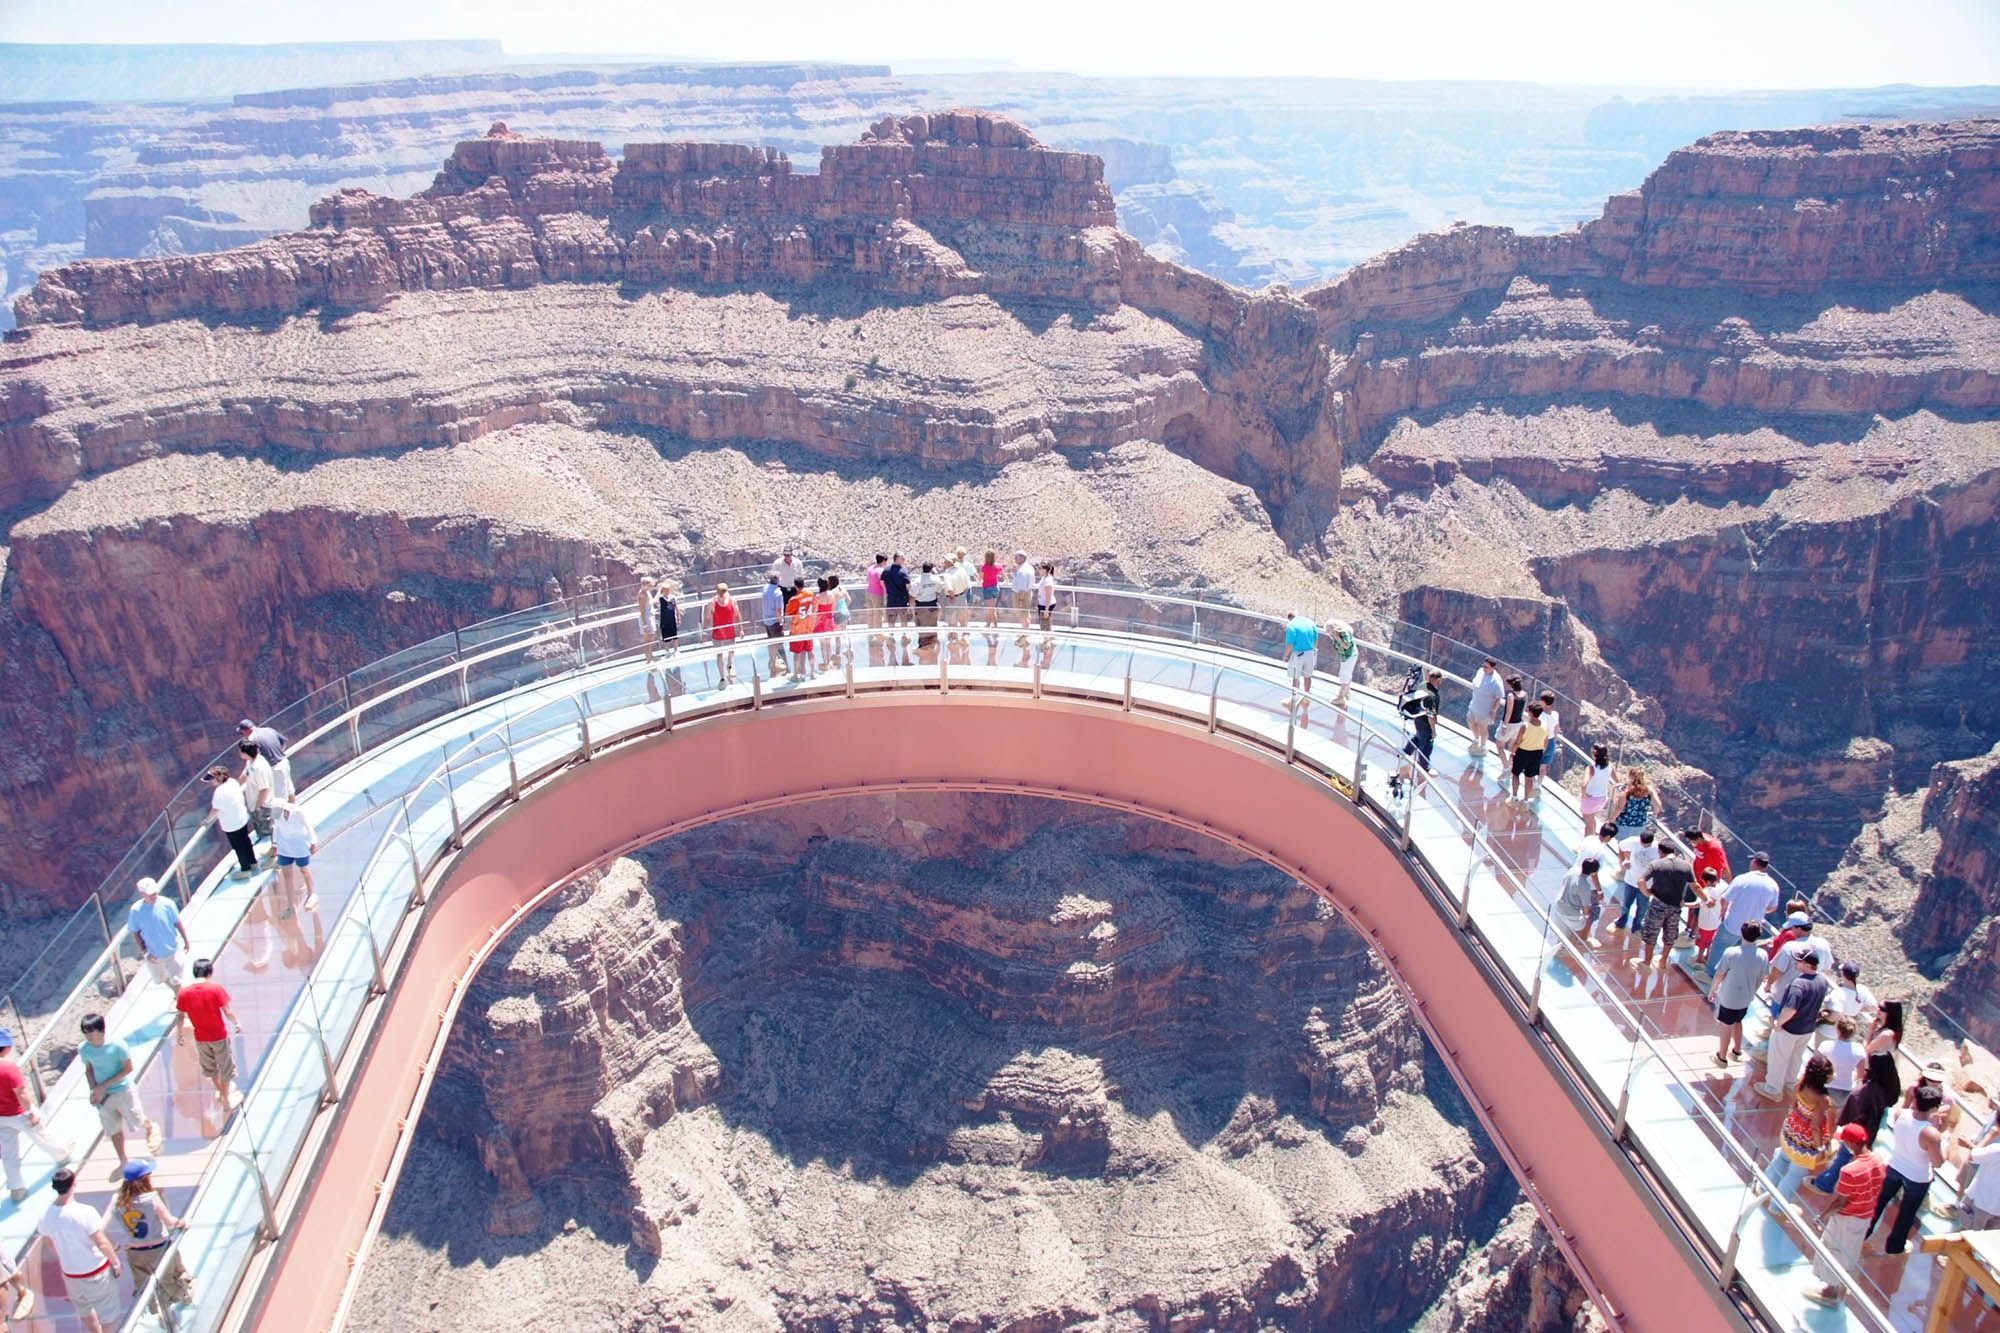 The Grand Canyon Skywalk Is A Glass Walkway And Steel The Grand Canyon Skywalk A Glass Bot Grand Canyon West Grand Canyon West Rim Visiting The Grand Canyon